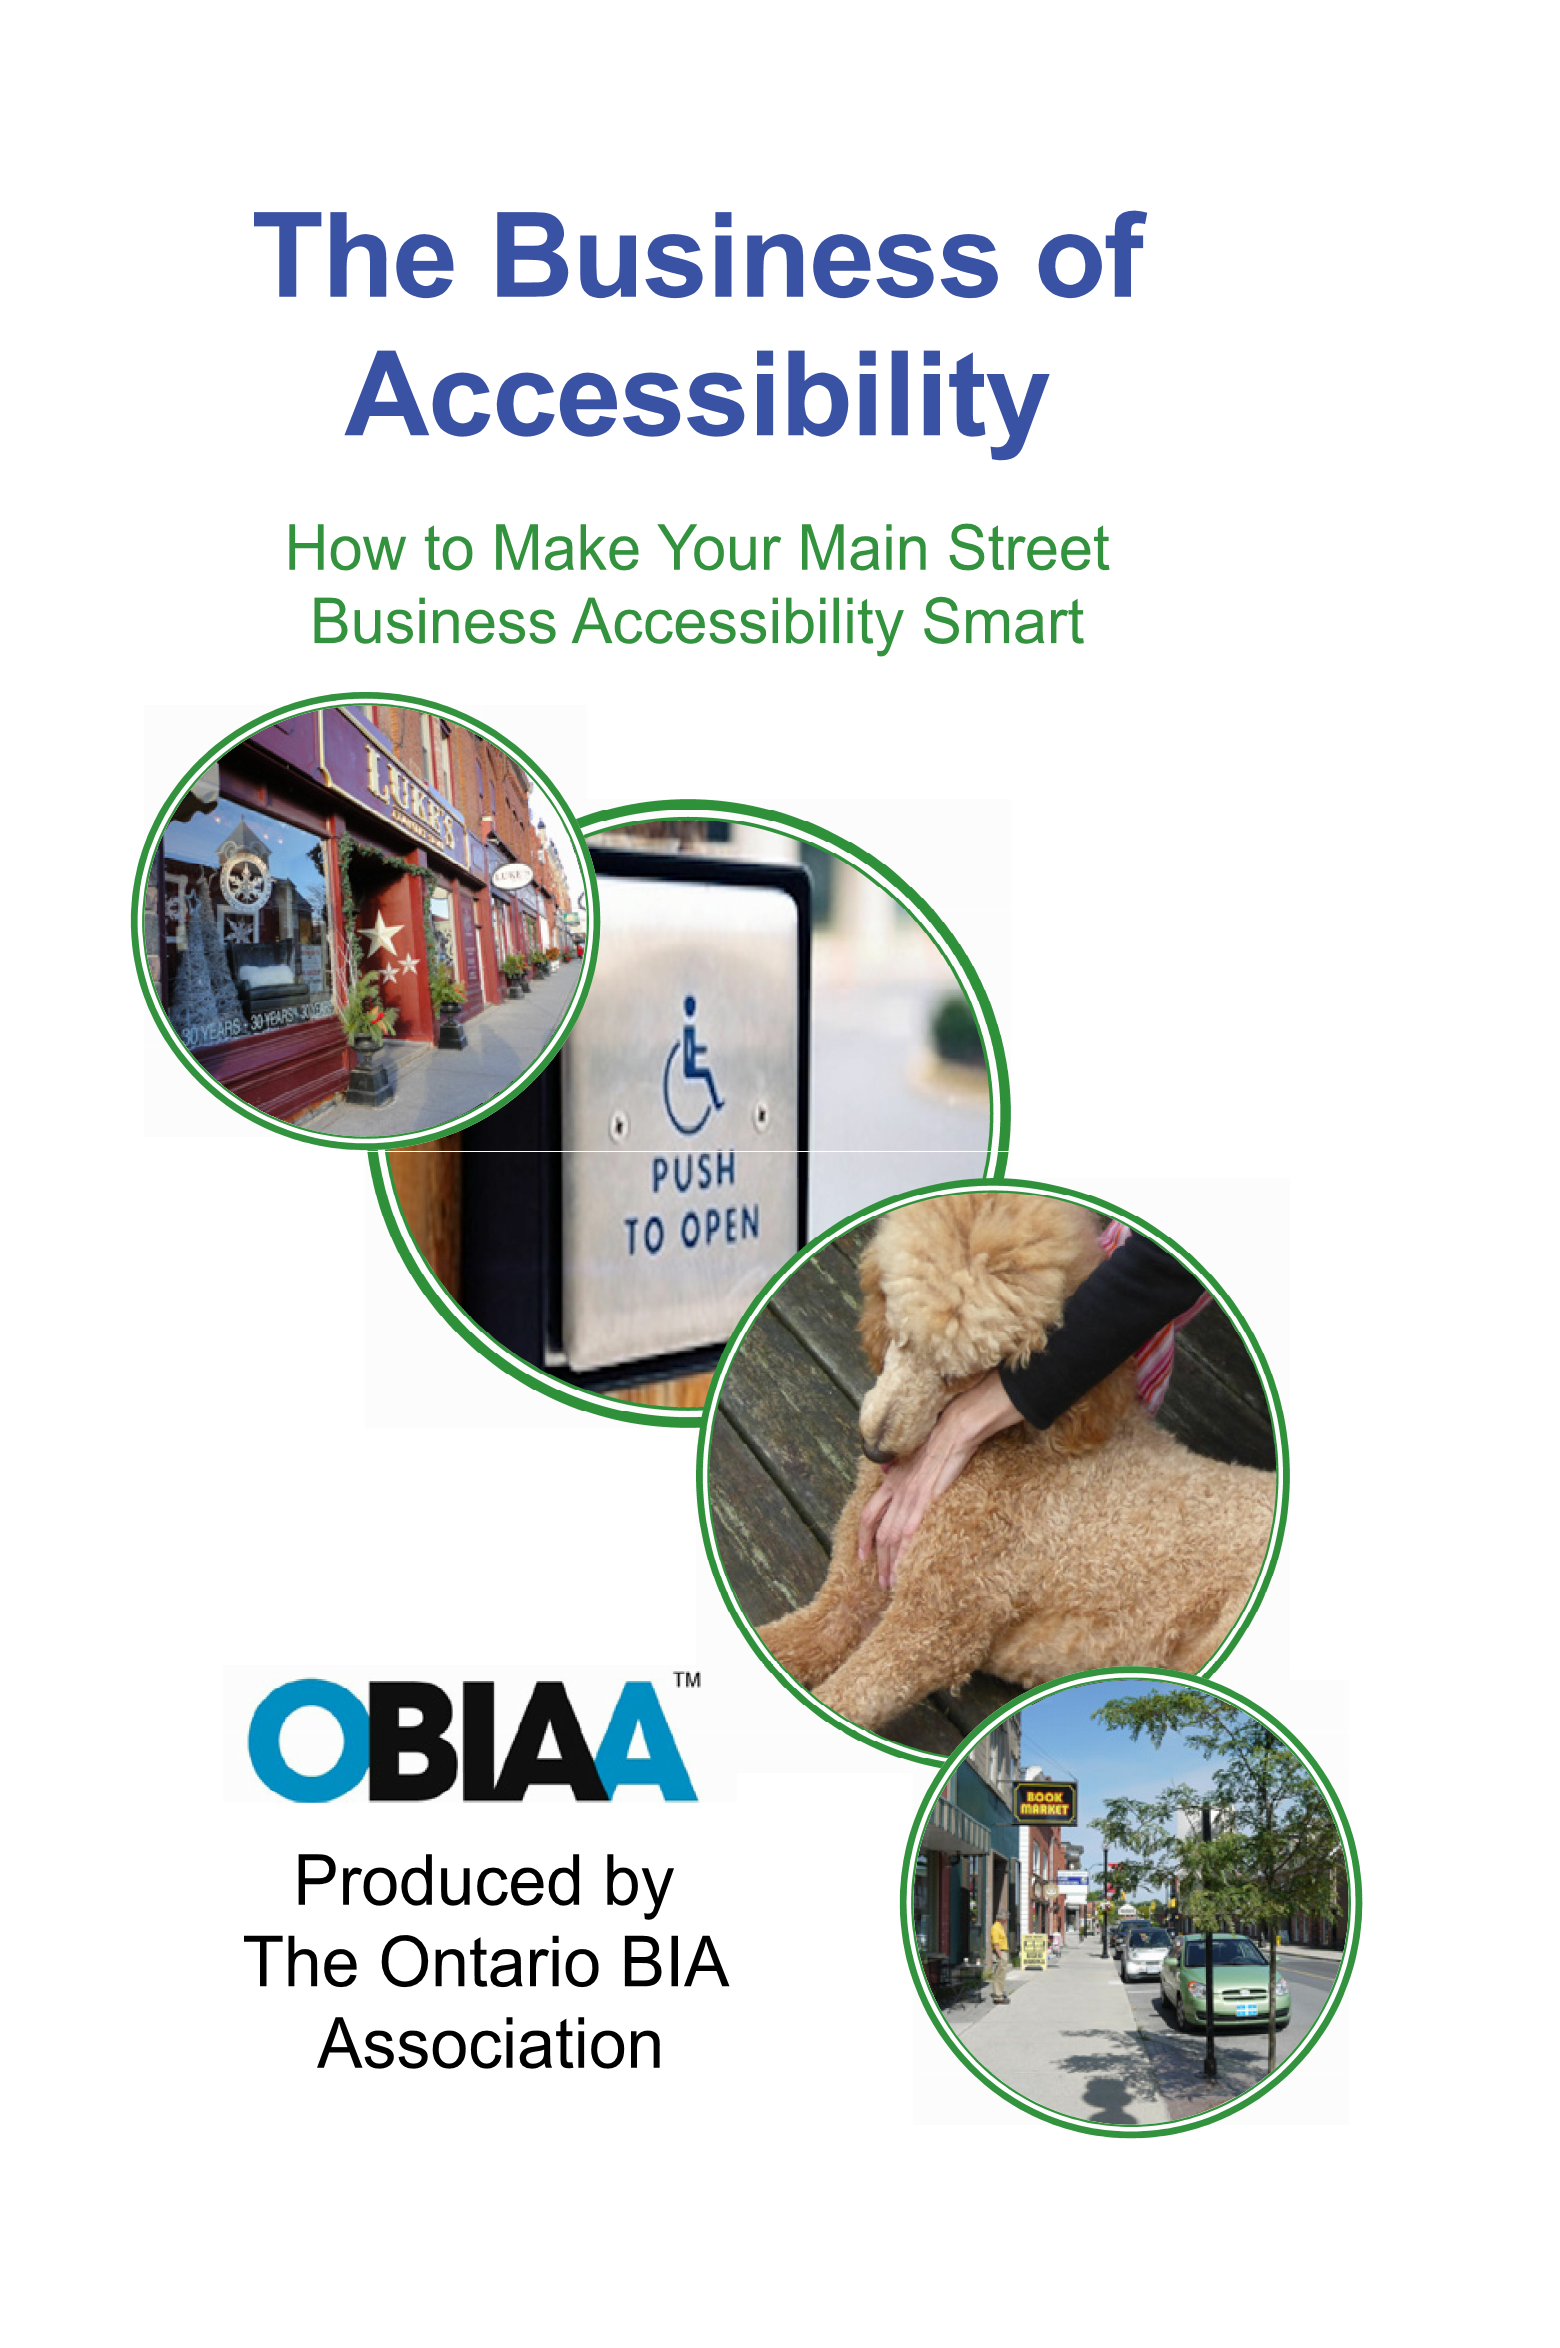 The Business of Accessibility Handbook